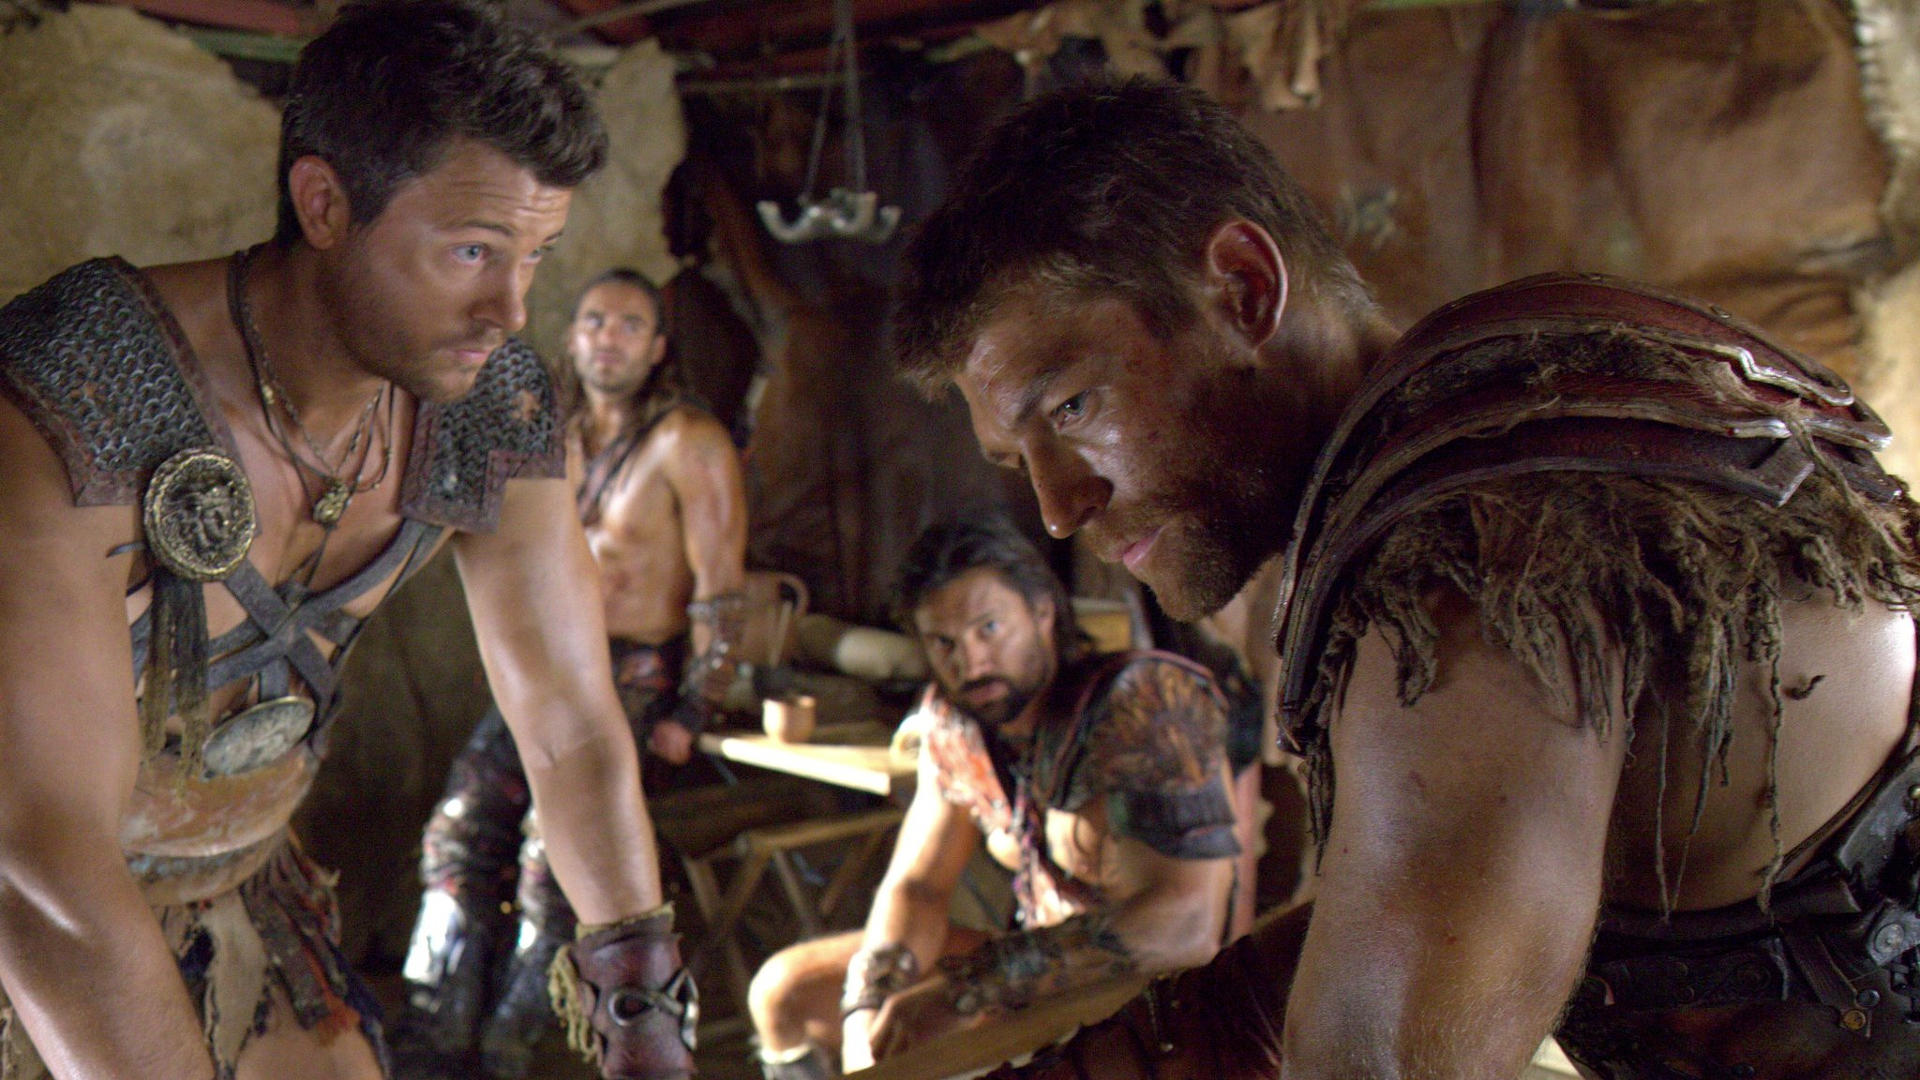 Watch spartacus season 3 episode 11: victory on (2013) | tv guide.